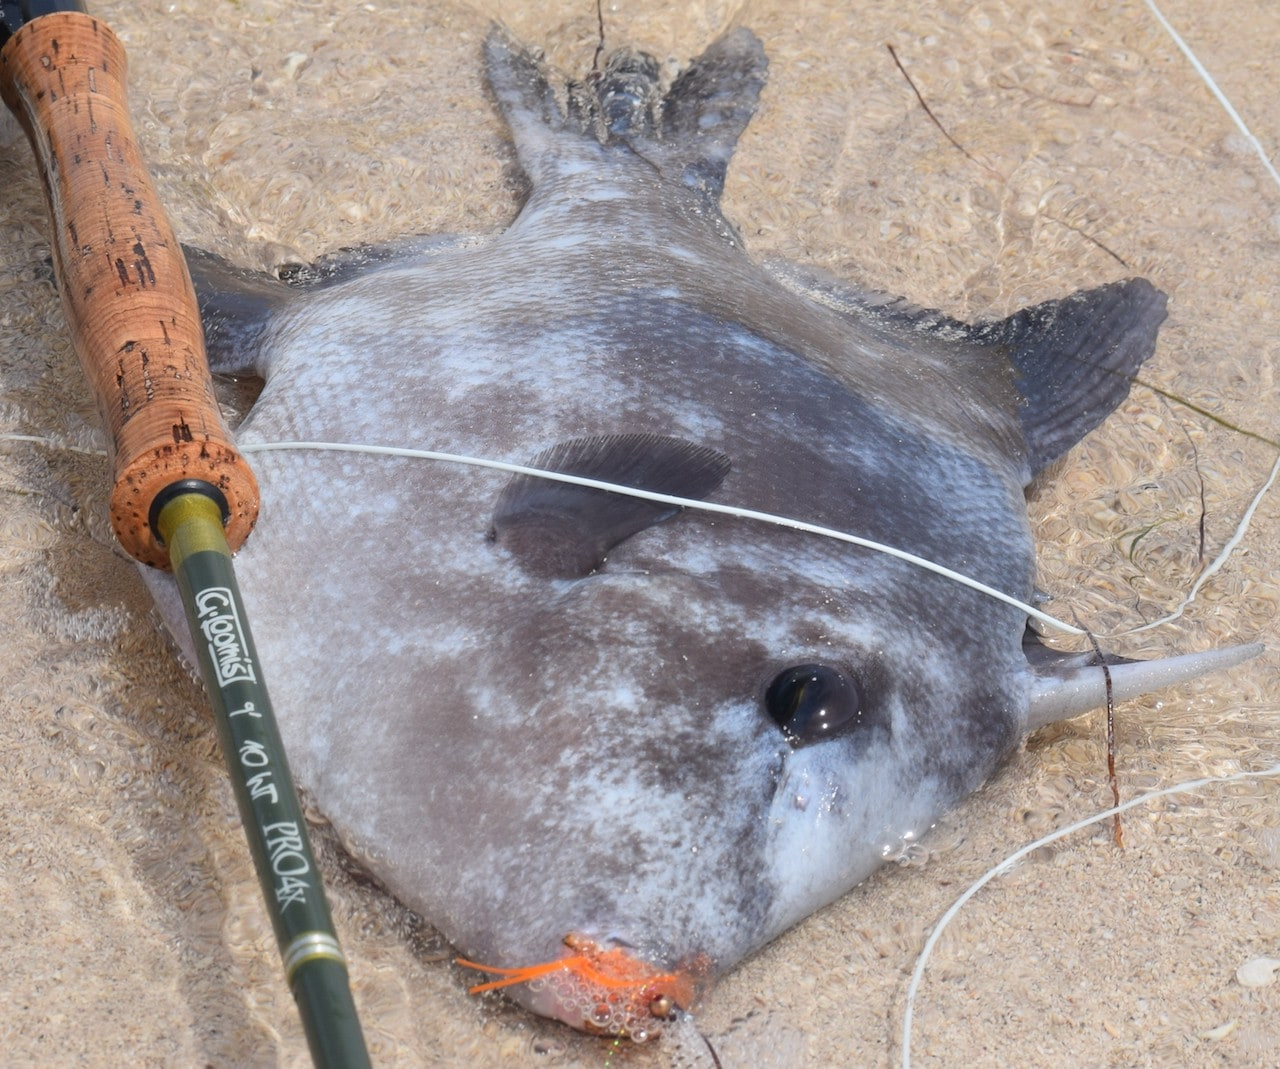 Trigger fish are super-fun to catch